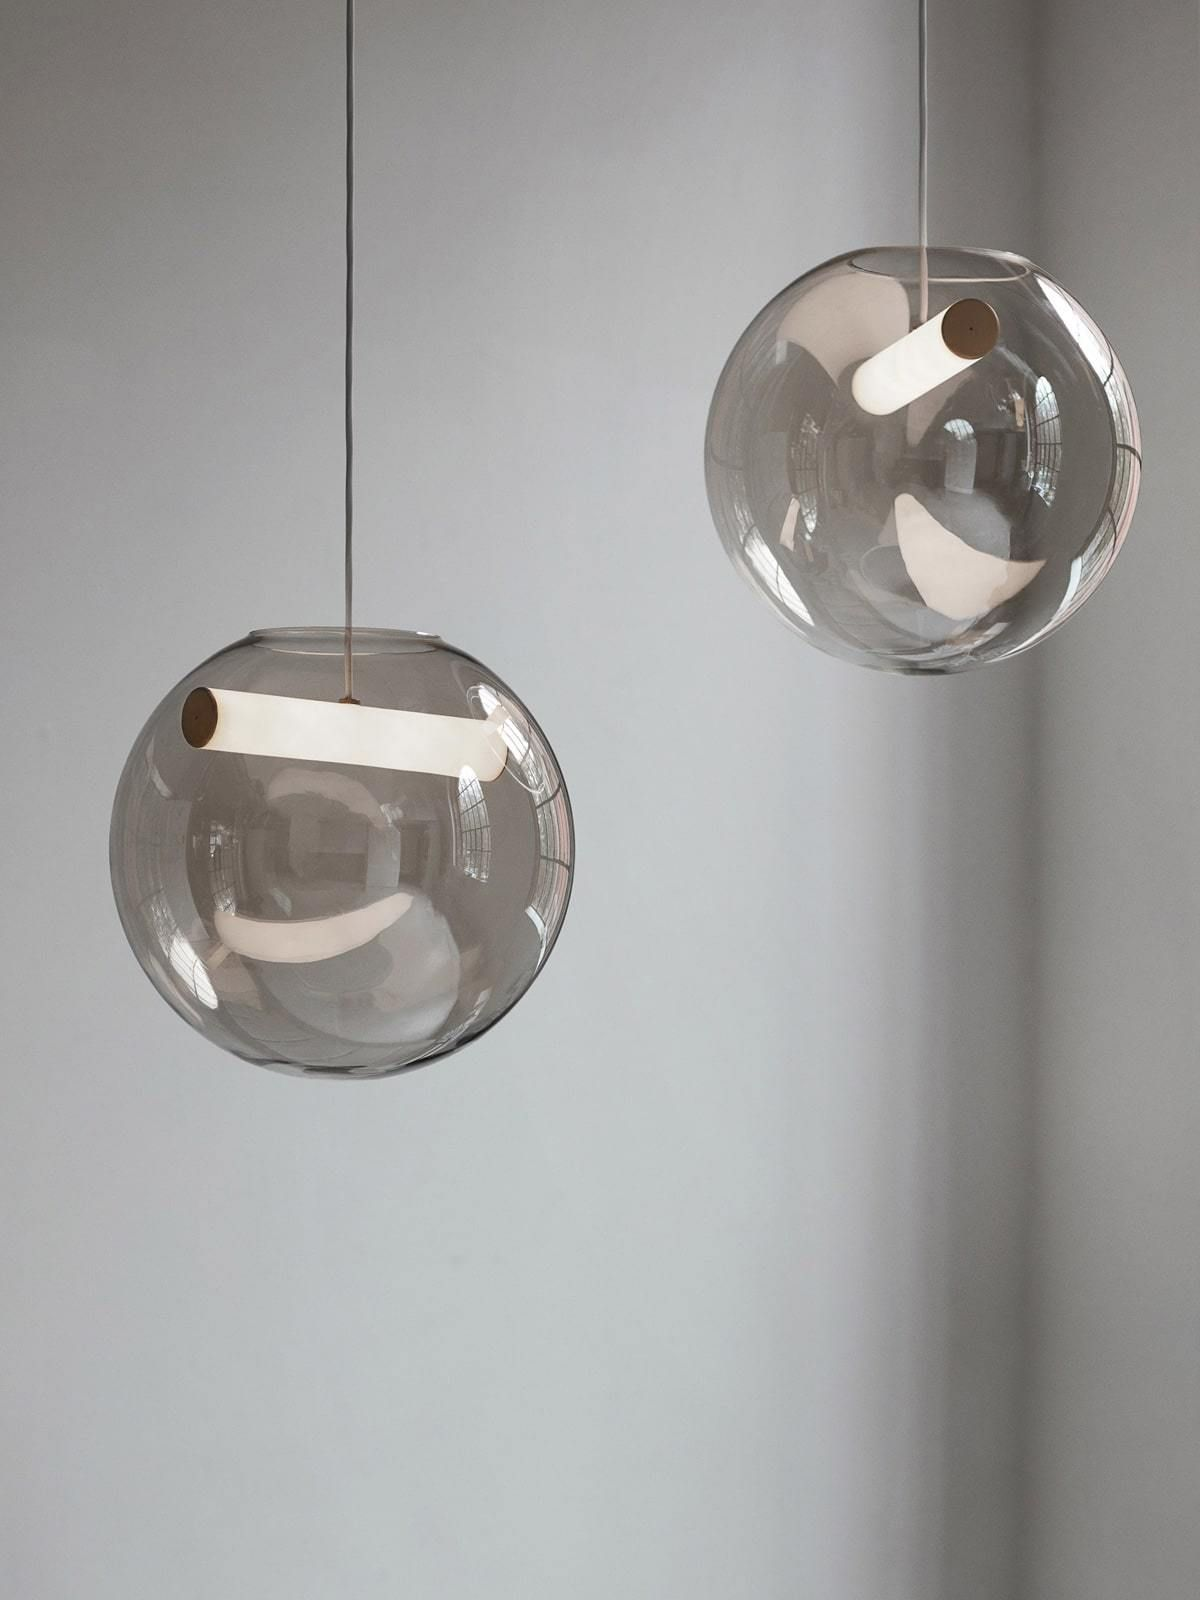 Glas Leuchte Reveal In 2019 Lighting Lighting Ceiling Lights Interior